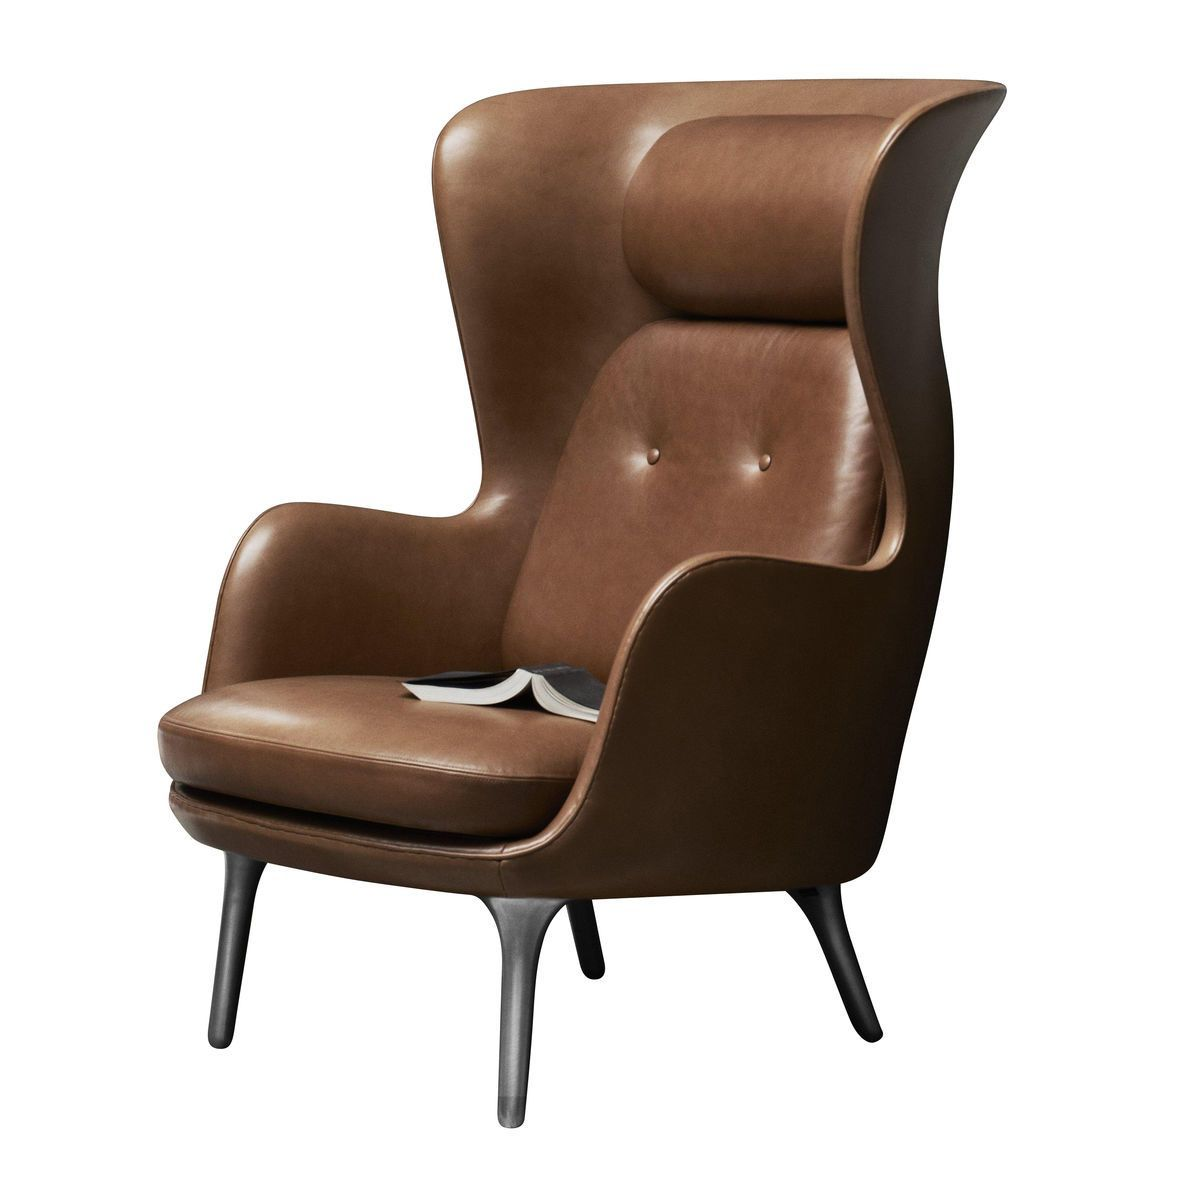 ro wingback chair leather fritz hansen. Black Bedroom Furniture Sets. Home Design Ideas